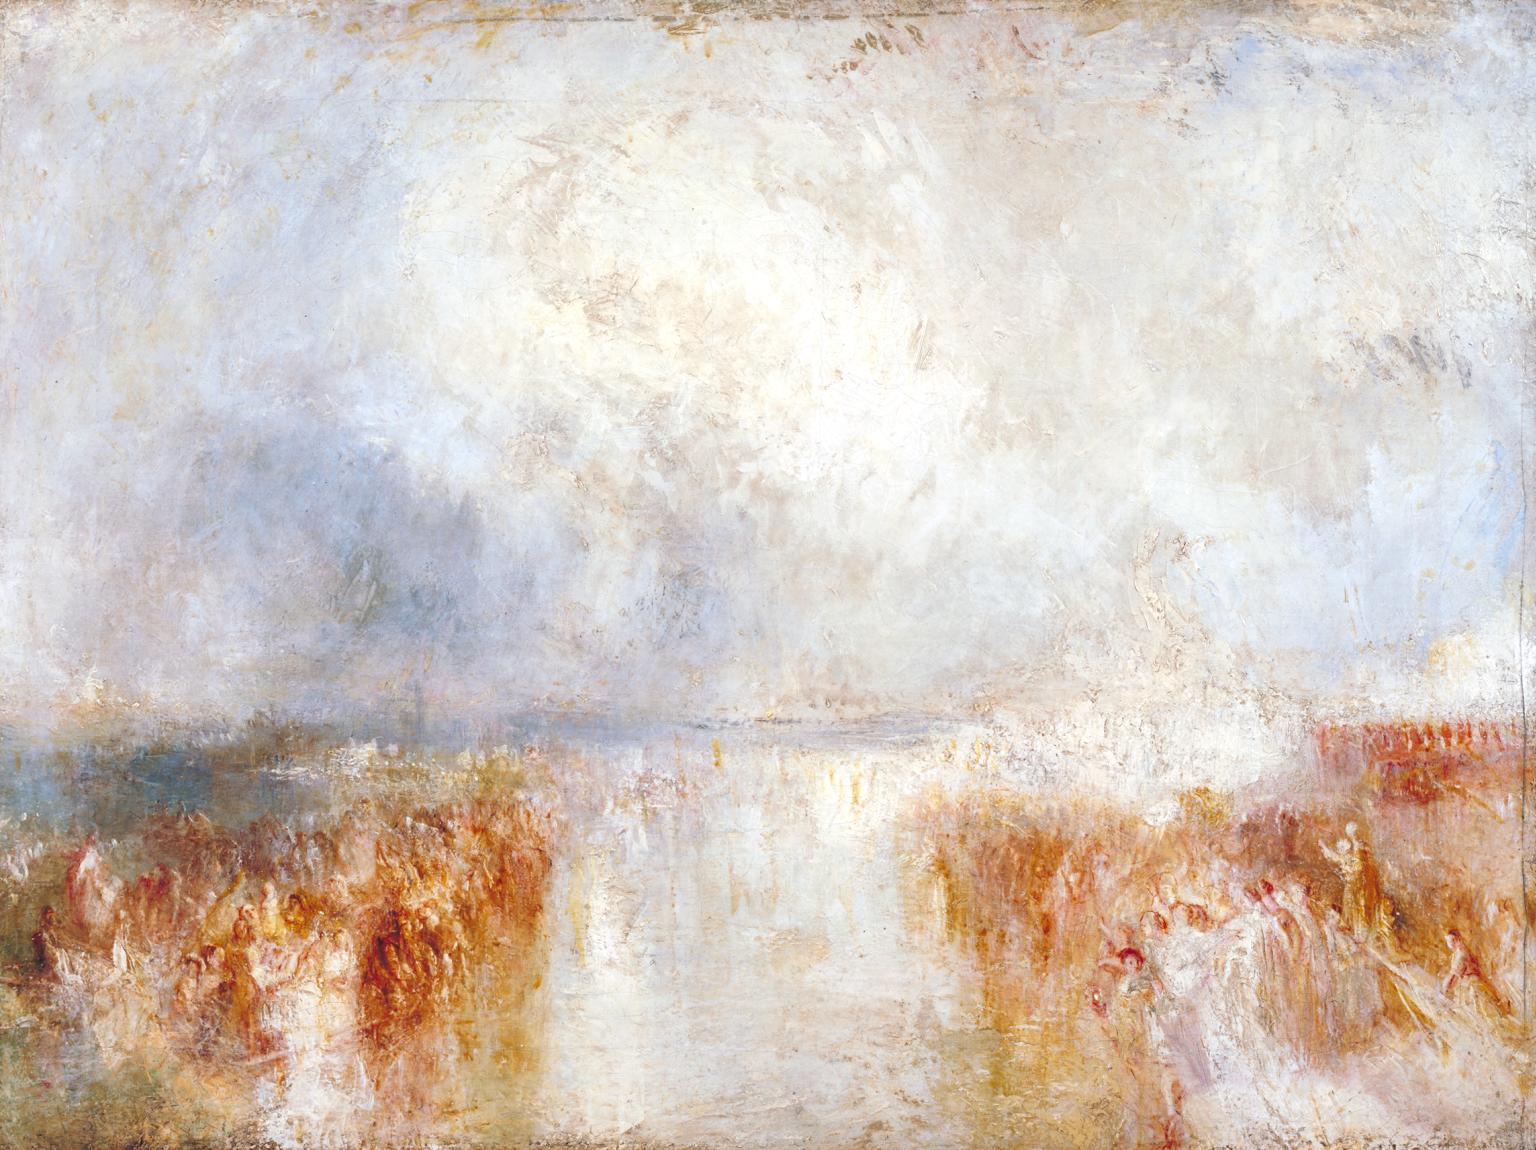 The Disembarkation of Louis-Philippe at the Royal Clarence Yard, Gosport, 8 October 1844 c.1844-5 by Joseph Mallord William Turner 1775-1851